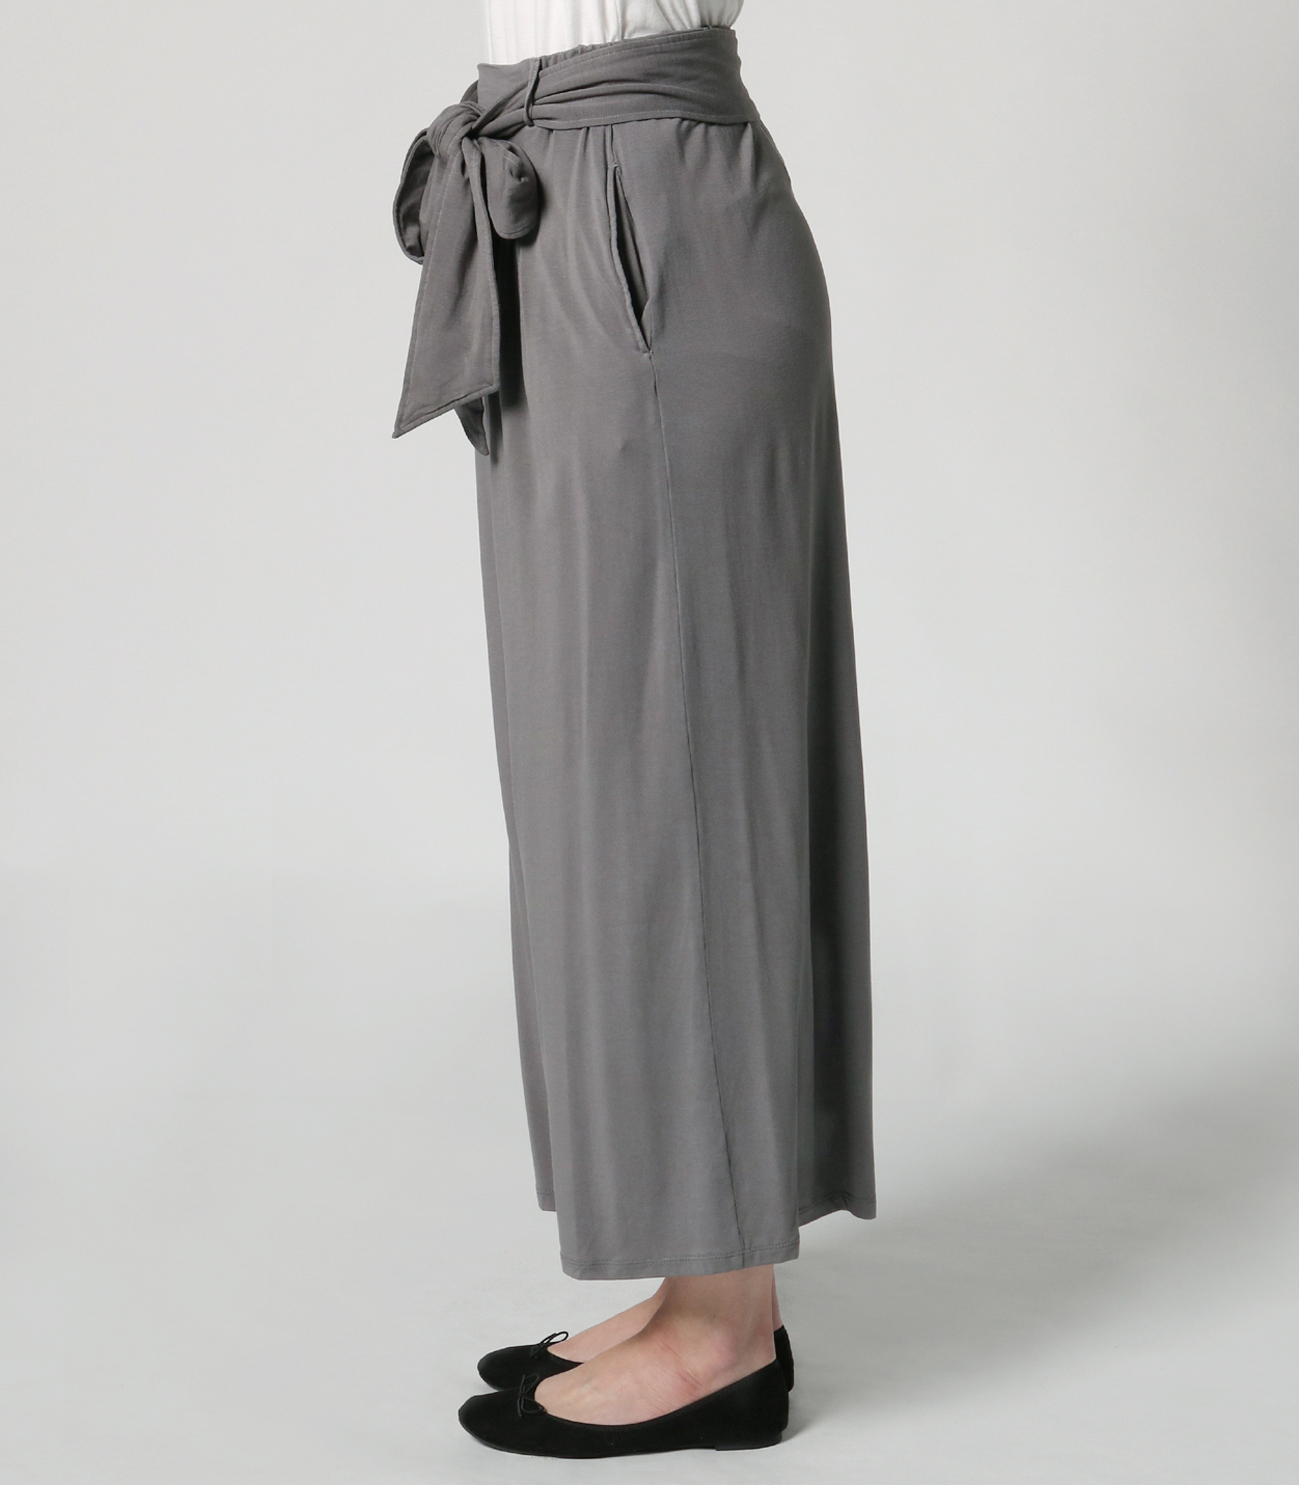 travel line tuck wide pant 詳細画像 shade 3